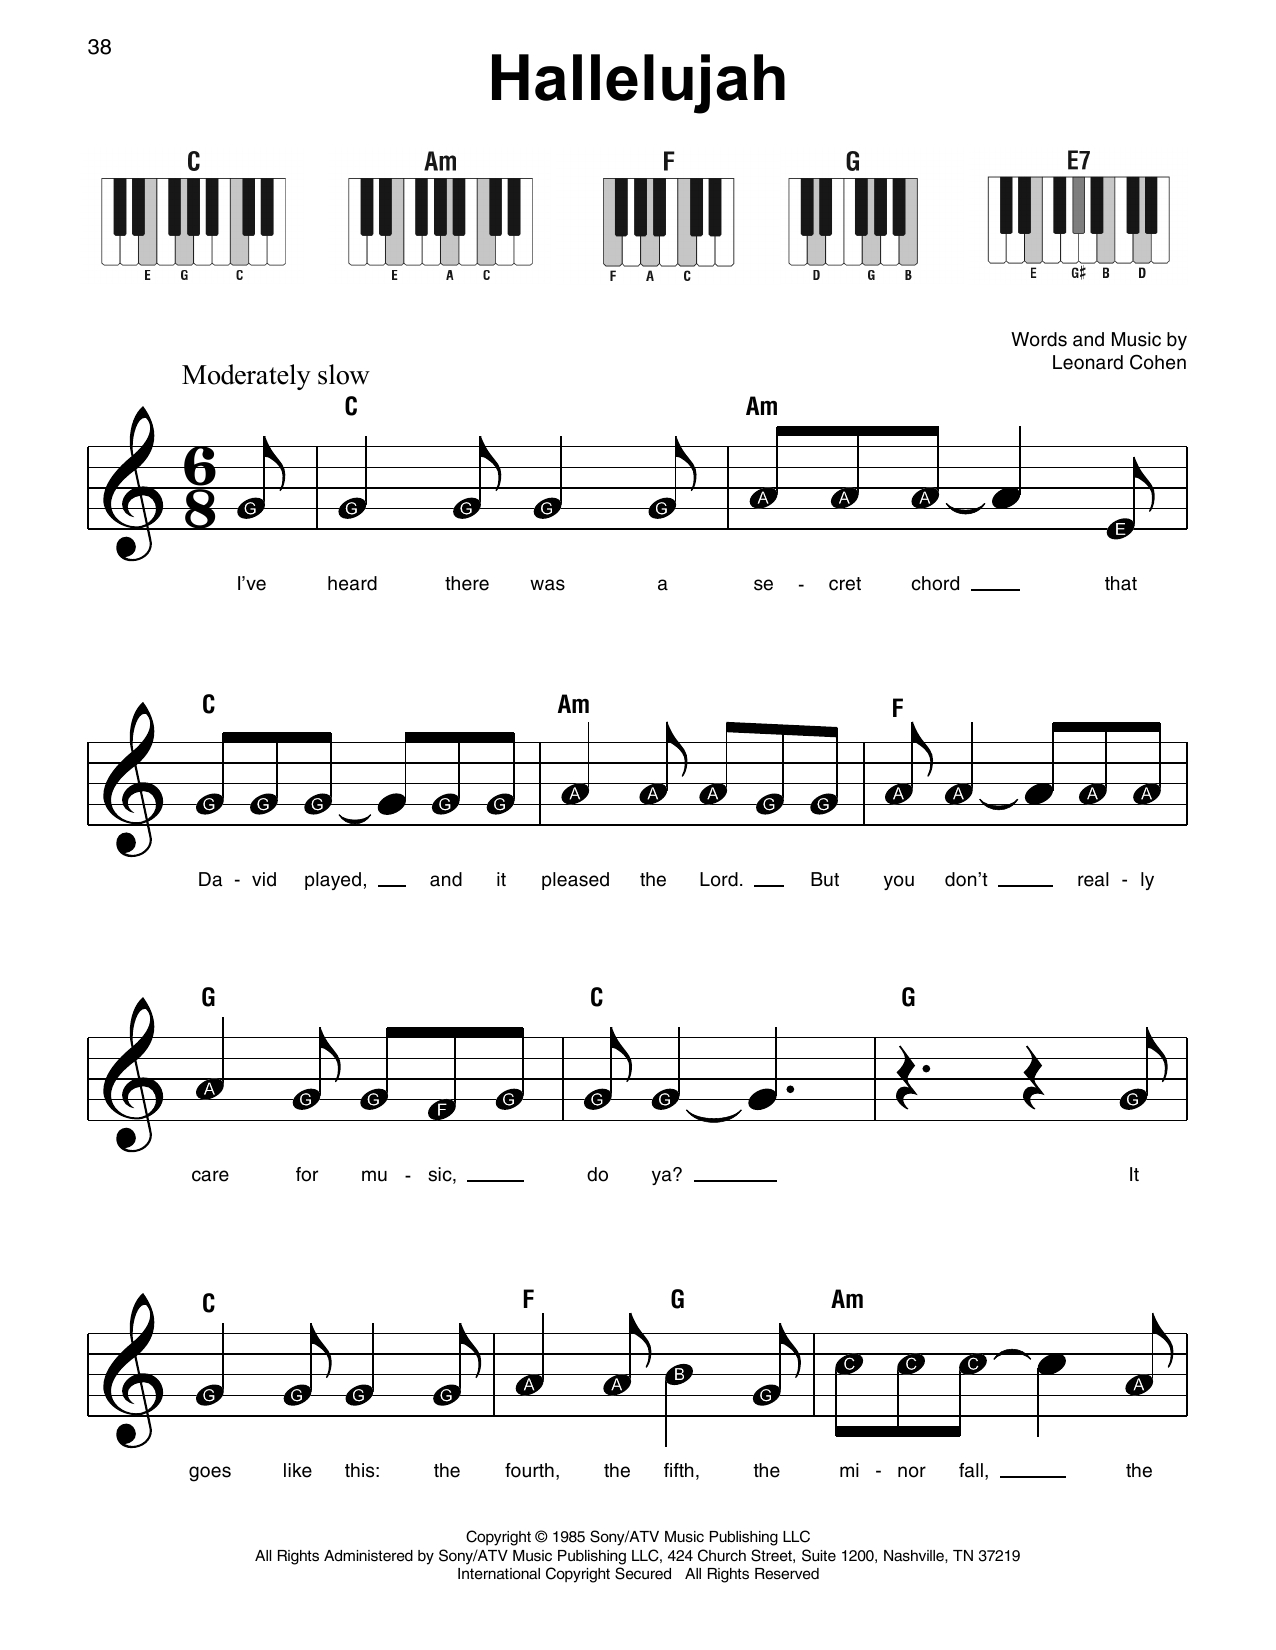 Hallelujah Sheet Music | Leonard Cohen | Super Easy Piano - Hallelujah Easy Piano Sheet Music Free Printable